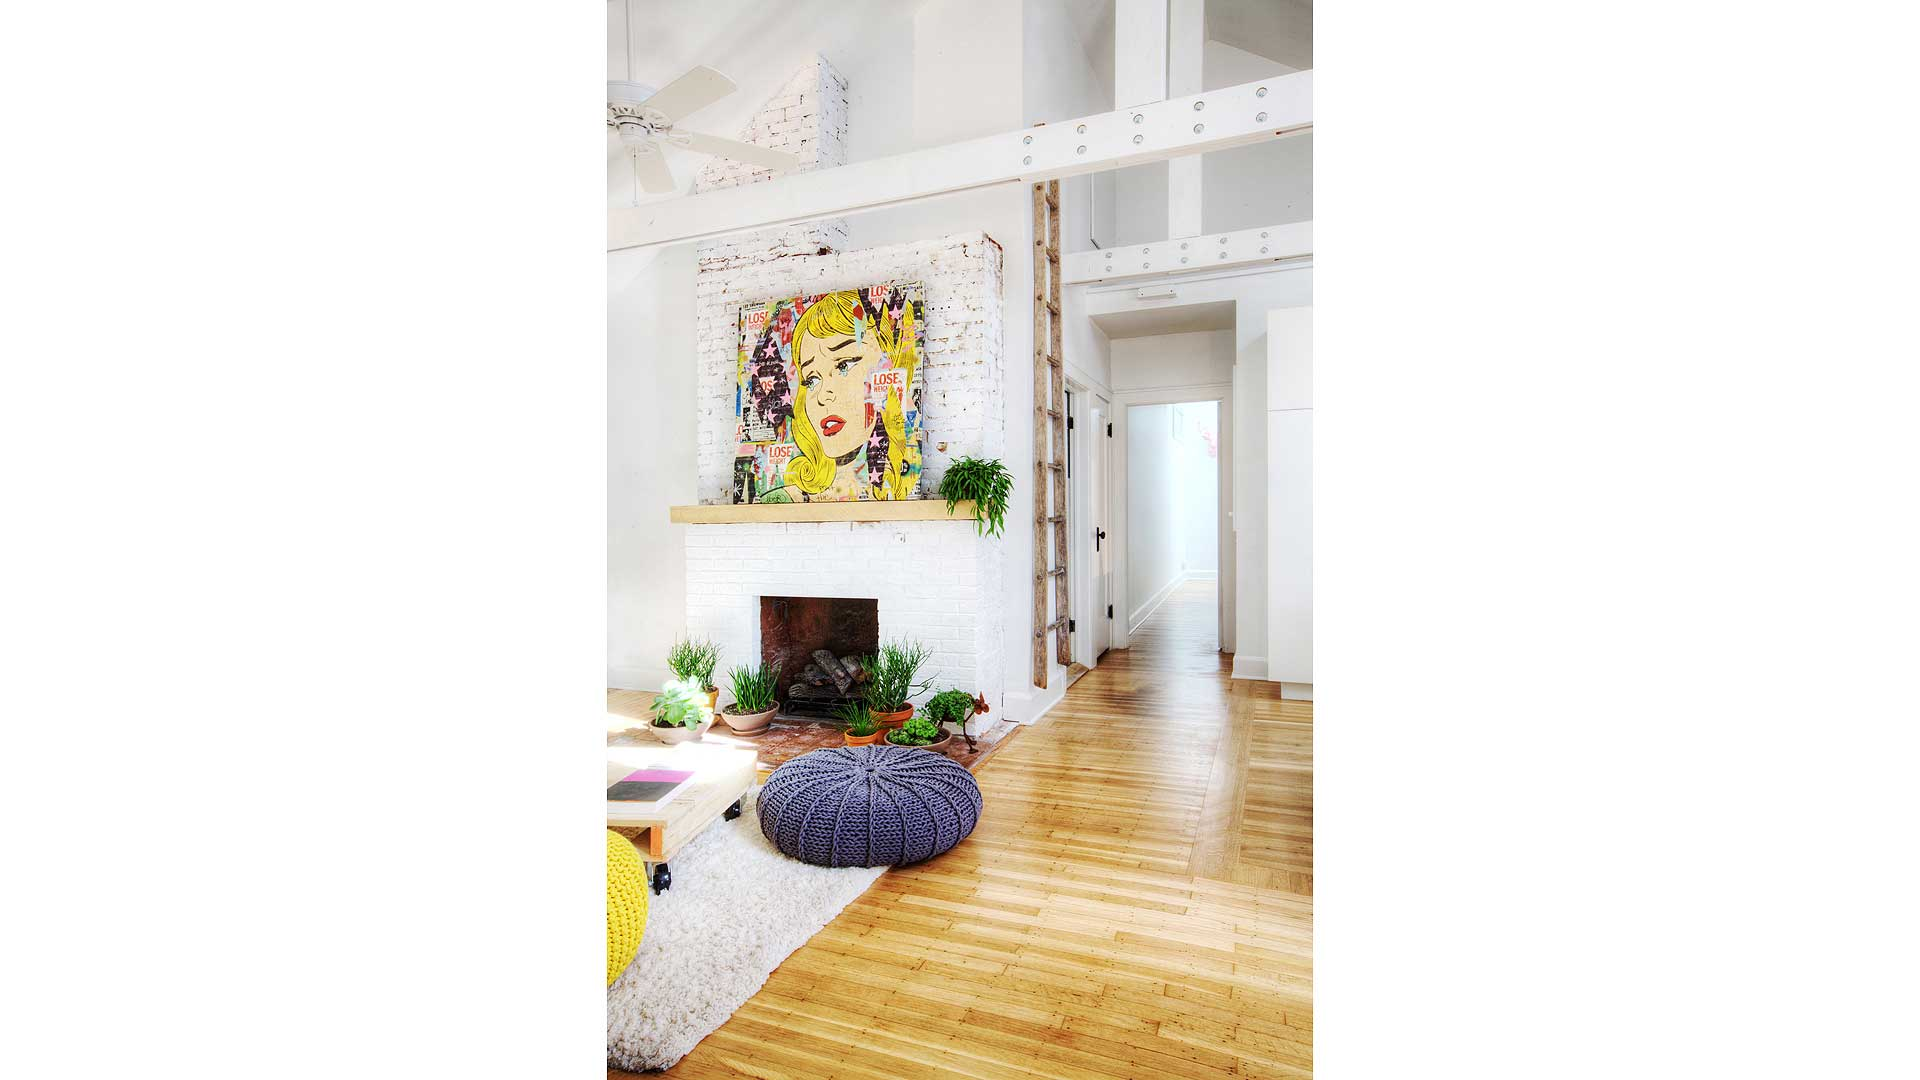 Cover Image - New vaulted ceiling and field-built trusses highlight the new living space that also features exposed fireplace brick, large-format art, and refinished wood flooring - and don't forget the poufs! - Broad Ripple Bungalow Phase 1 - Indianapolis, IN